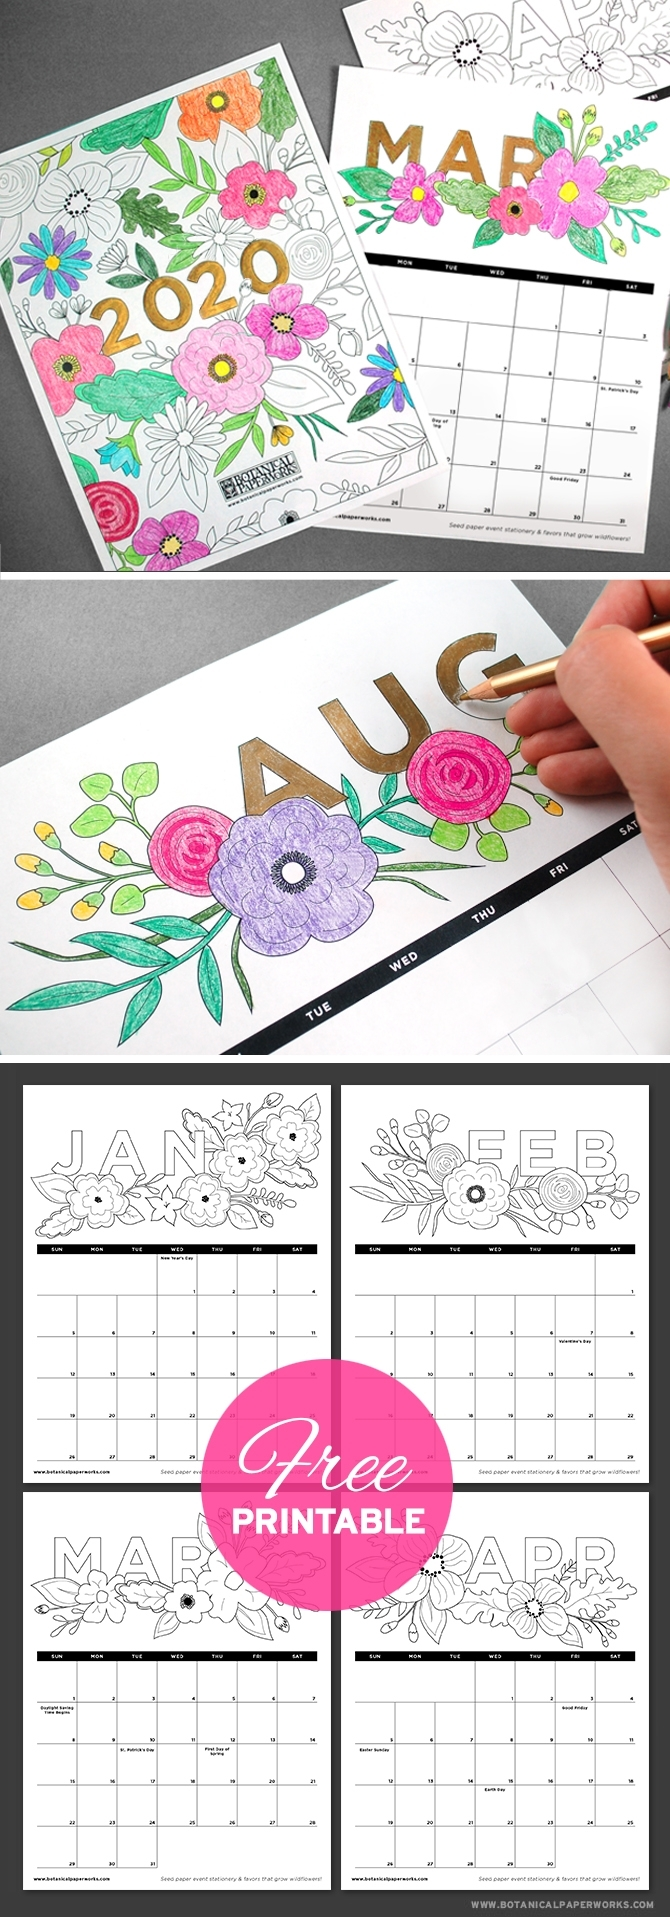 Free Printables} 2020 Calendars | Botanical Paperworks intended for Free Printable Children Calendars 2020 That Children Can Draw On